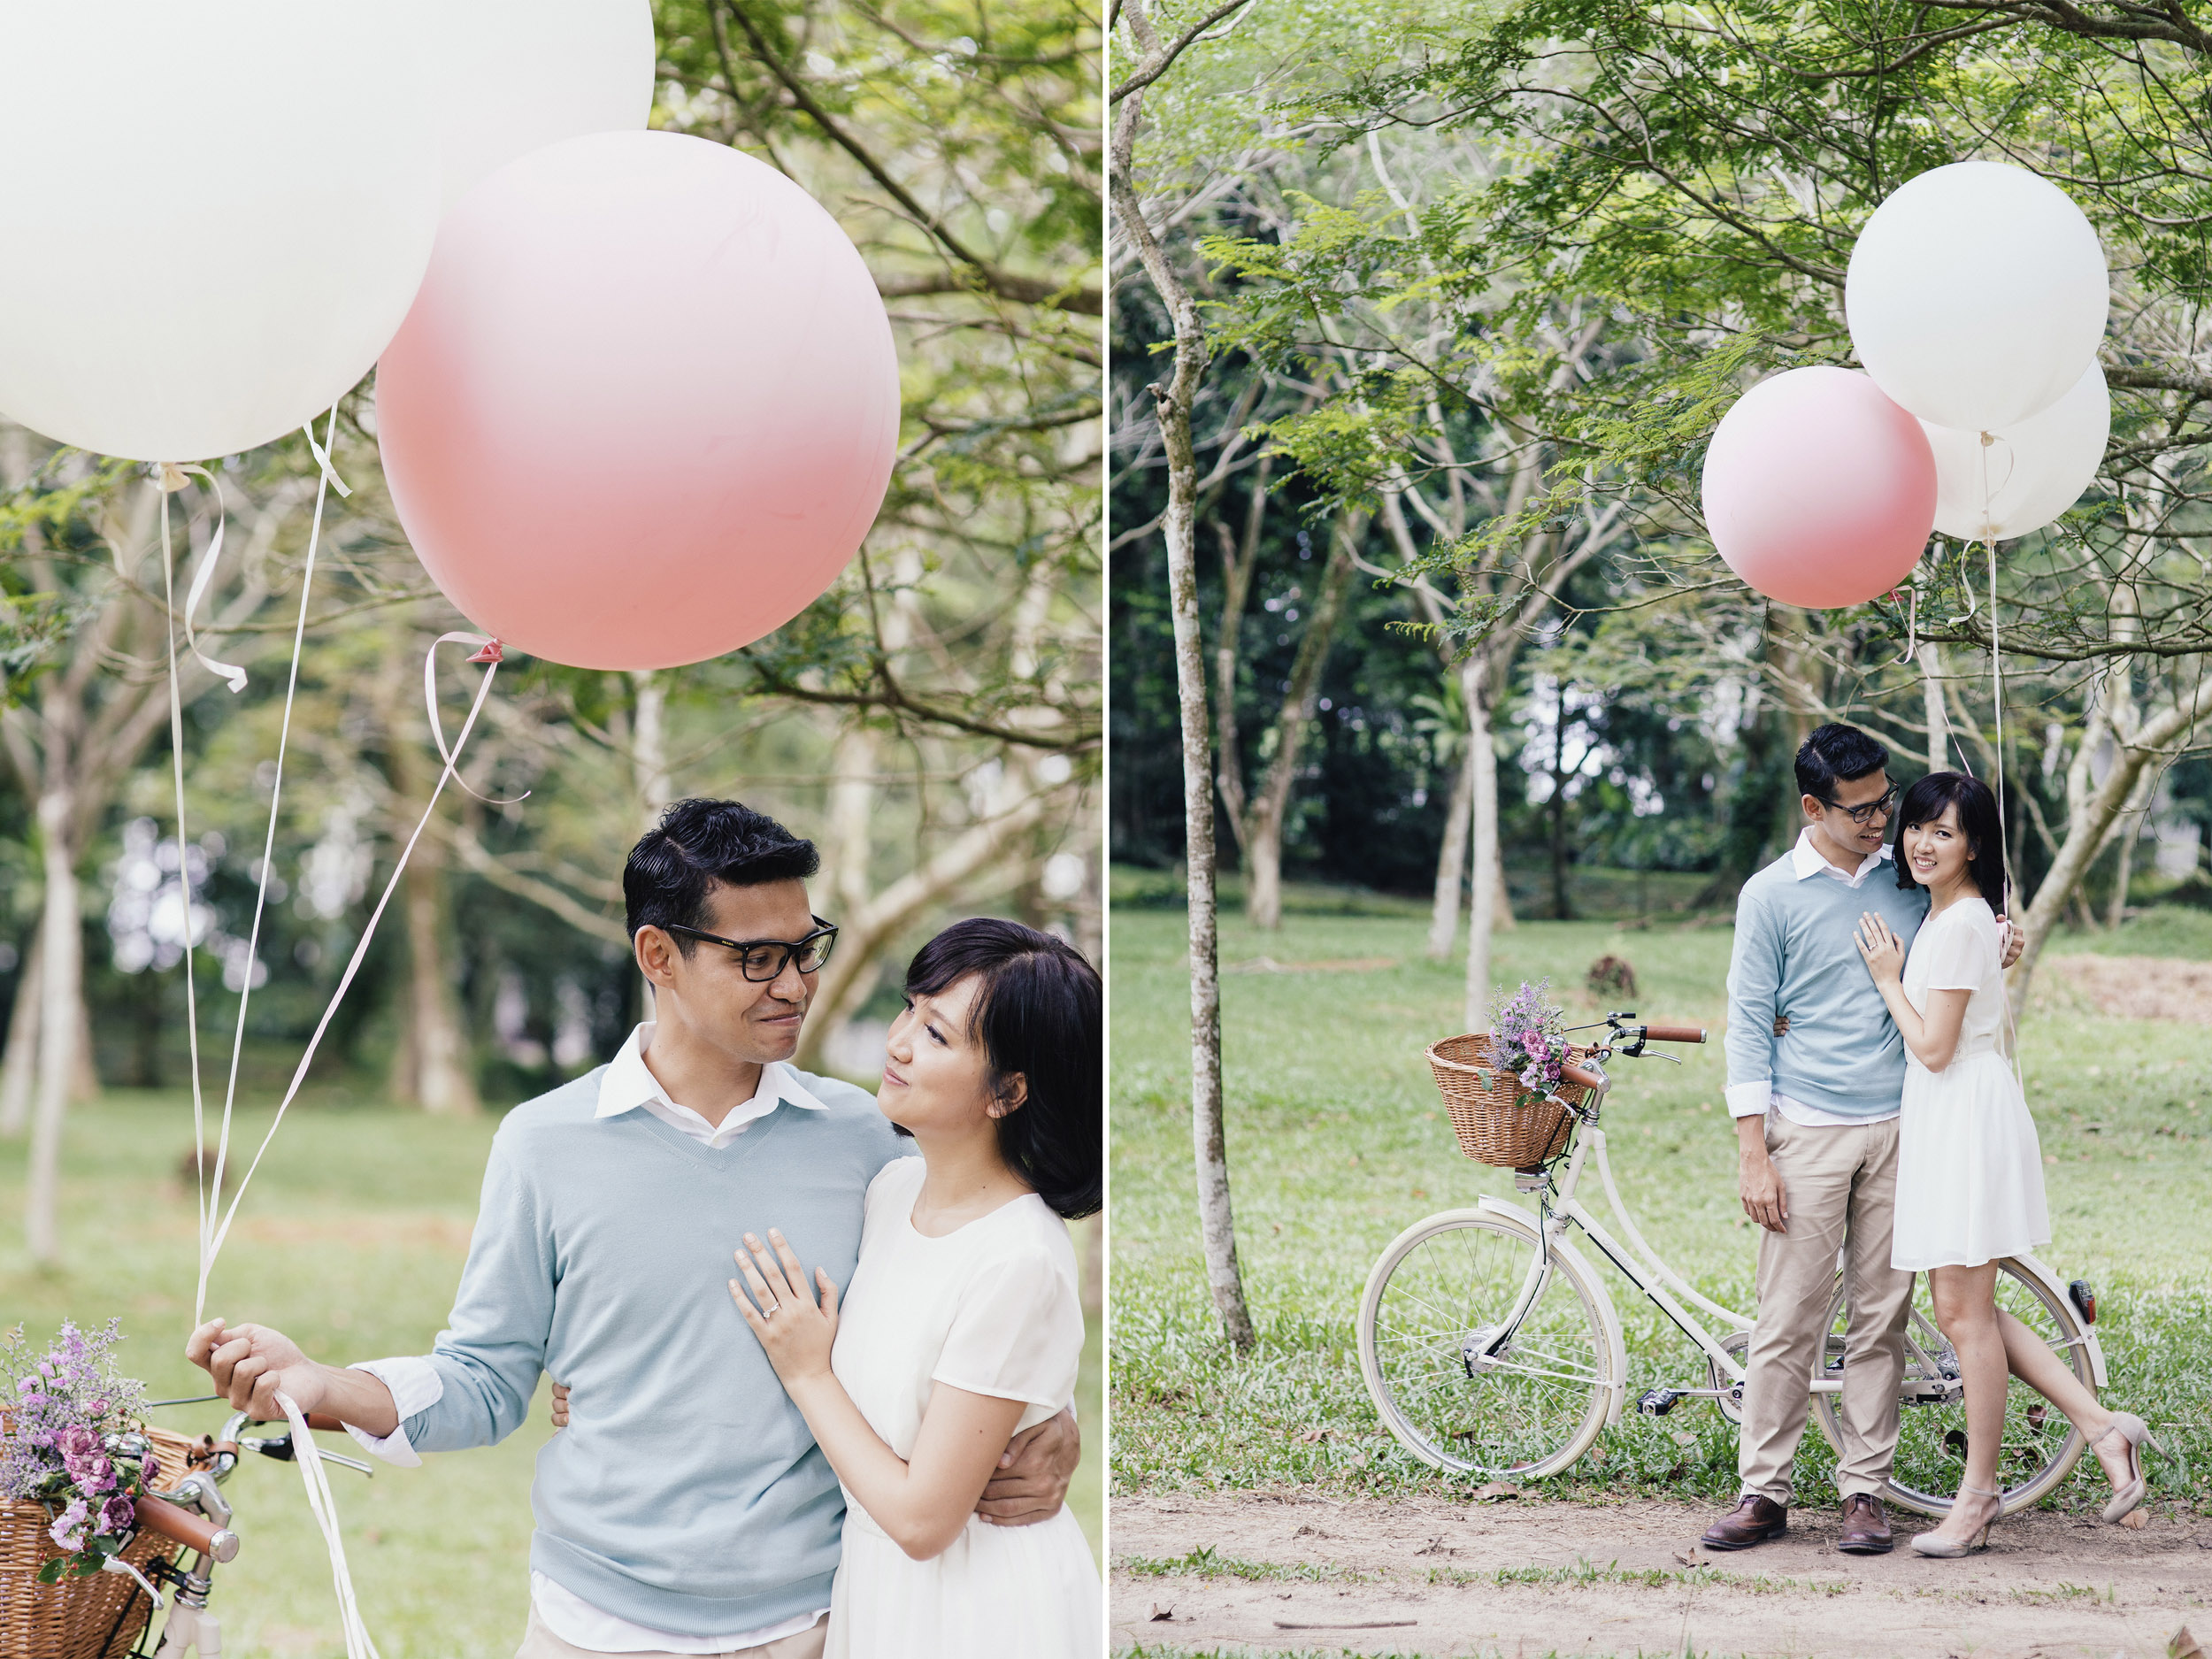 singapore-wedding-photographer-wemadethese-adib-mizah-2012-sessions-011.jpg